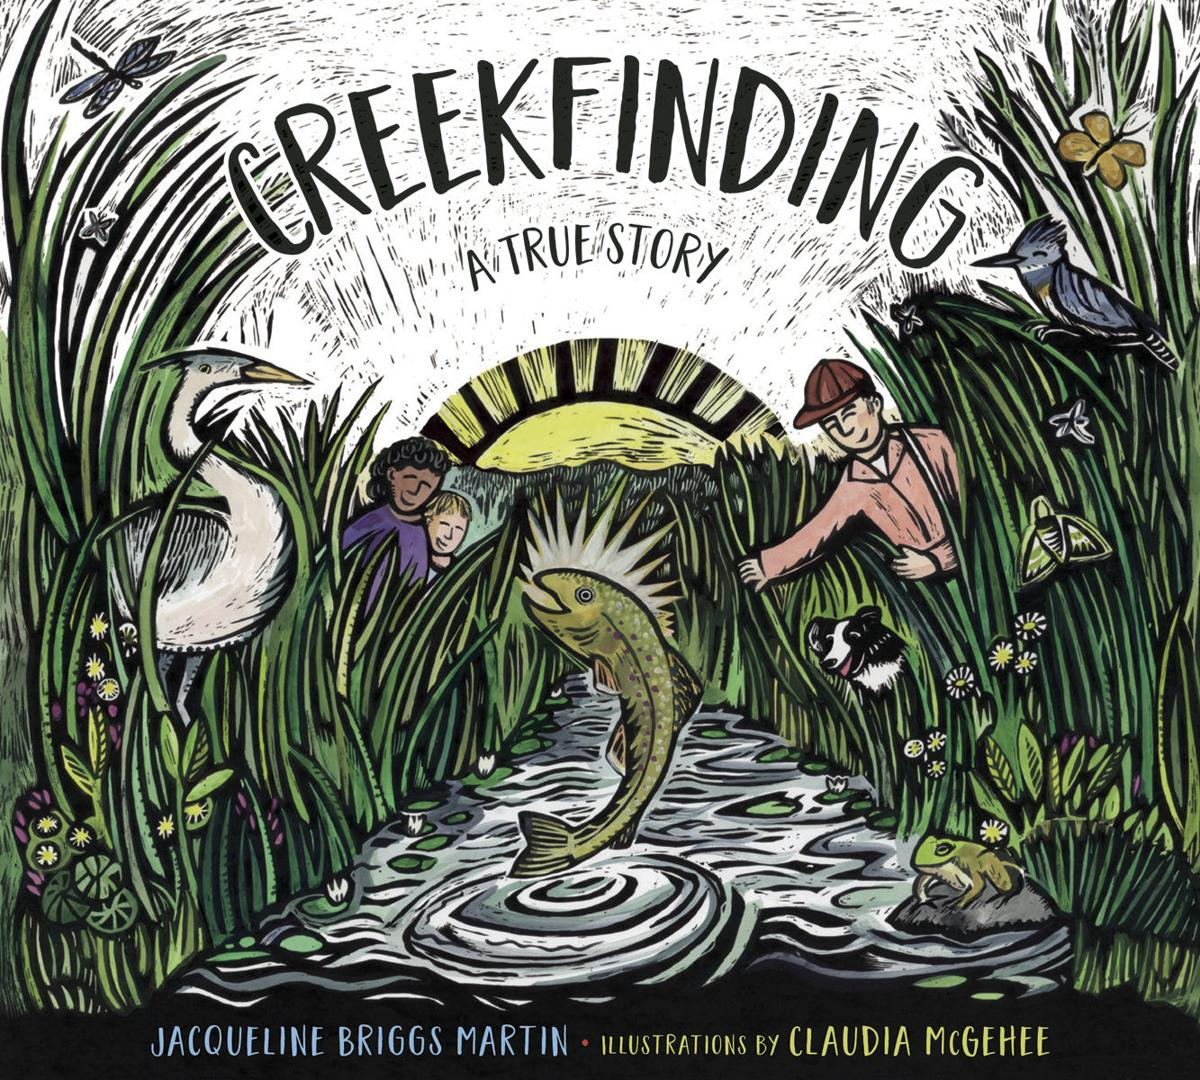 """Creekfinding, A True Story"""